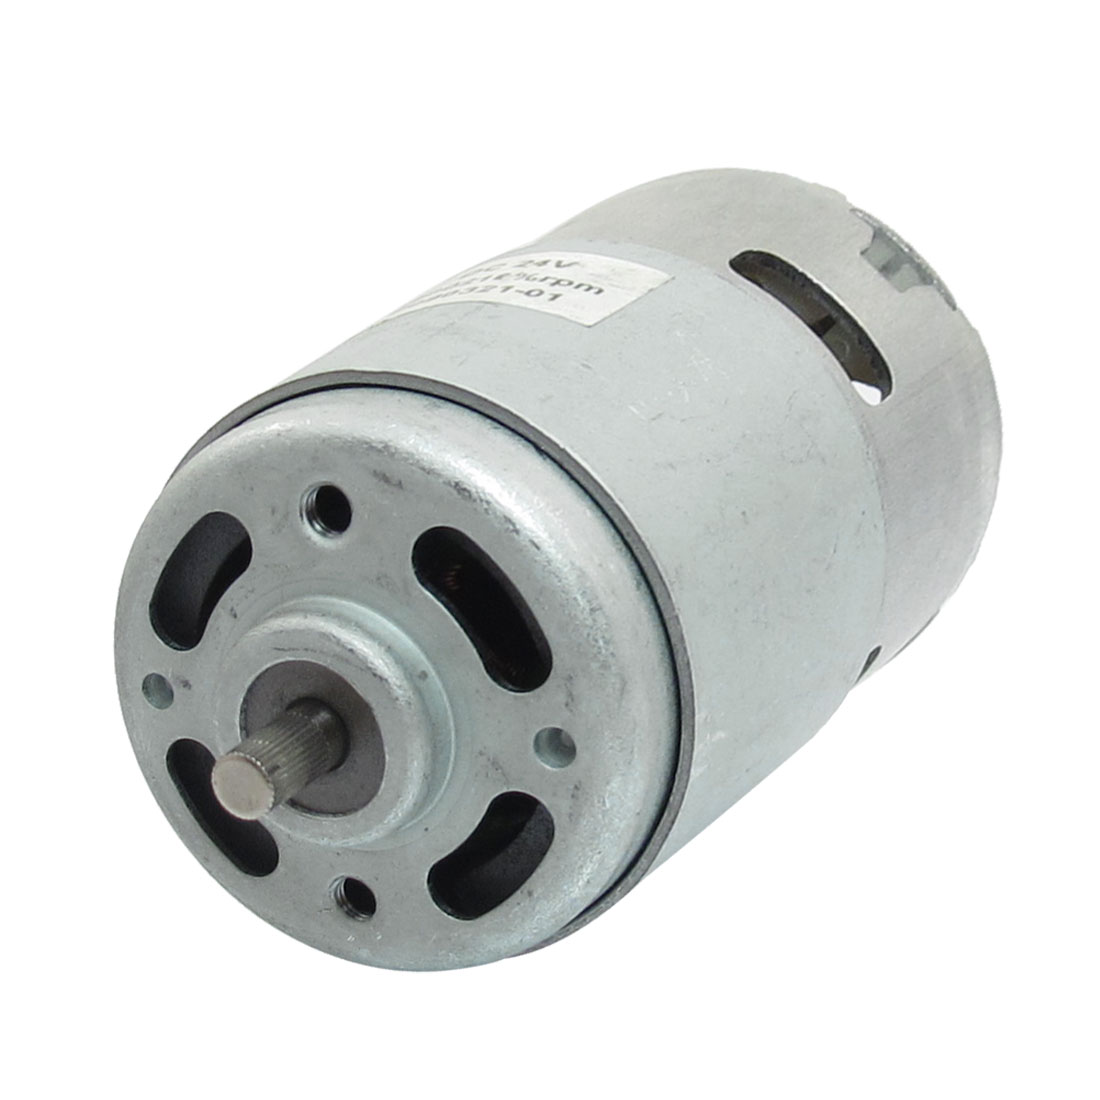 4600 RPM 24V High Torque Cylinder Magnetic Electric Mini DC Motor